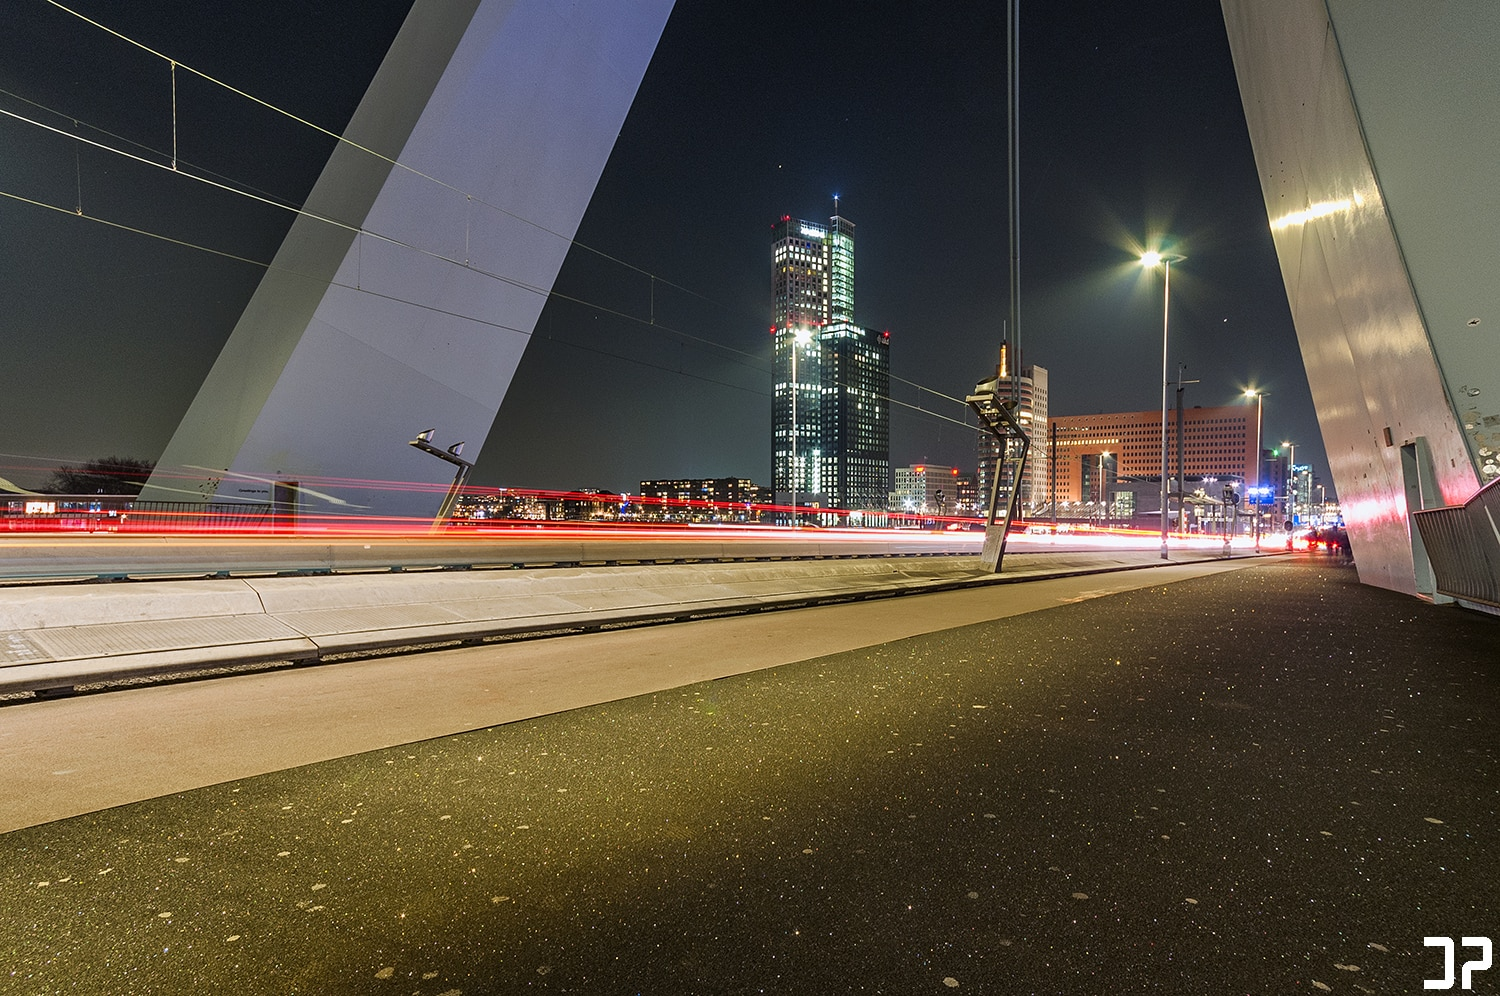 Avondfotografie: Under the bridge - Erasmusbrug Rotterdam